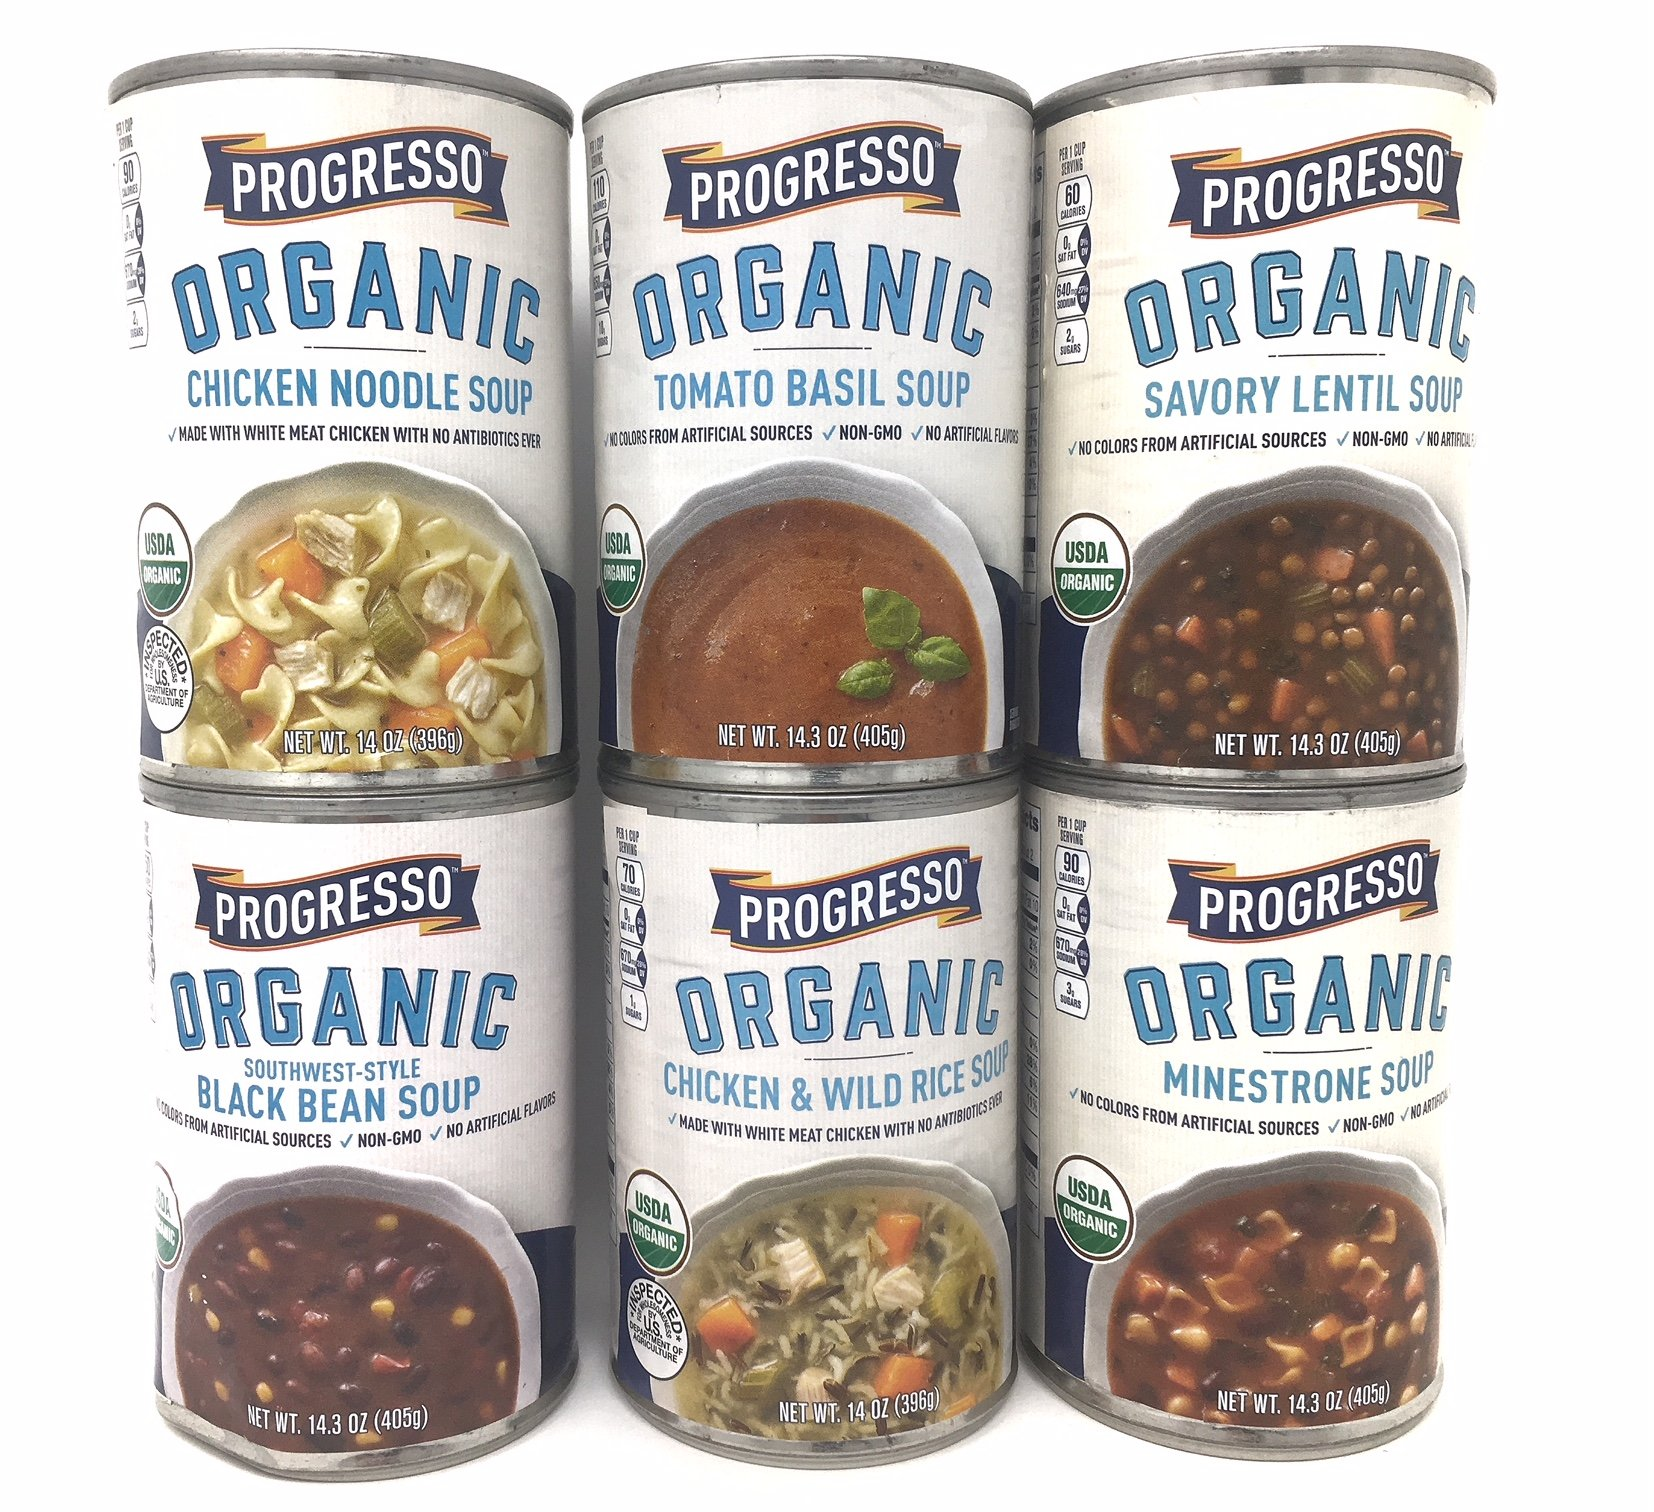 Progresso Organic Soup Variety Pack; Black Bean, Tomato Basil, Chicken Noodle, Chicken & Wild Rice, Minestrone and Savory Lentil Soup, 14-14.3 Oz (Bundle: 6 Items)